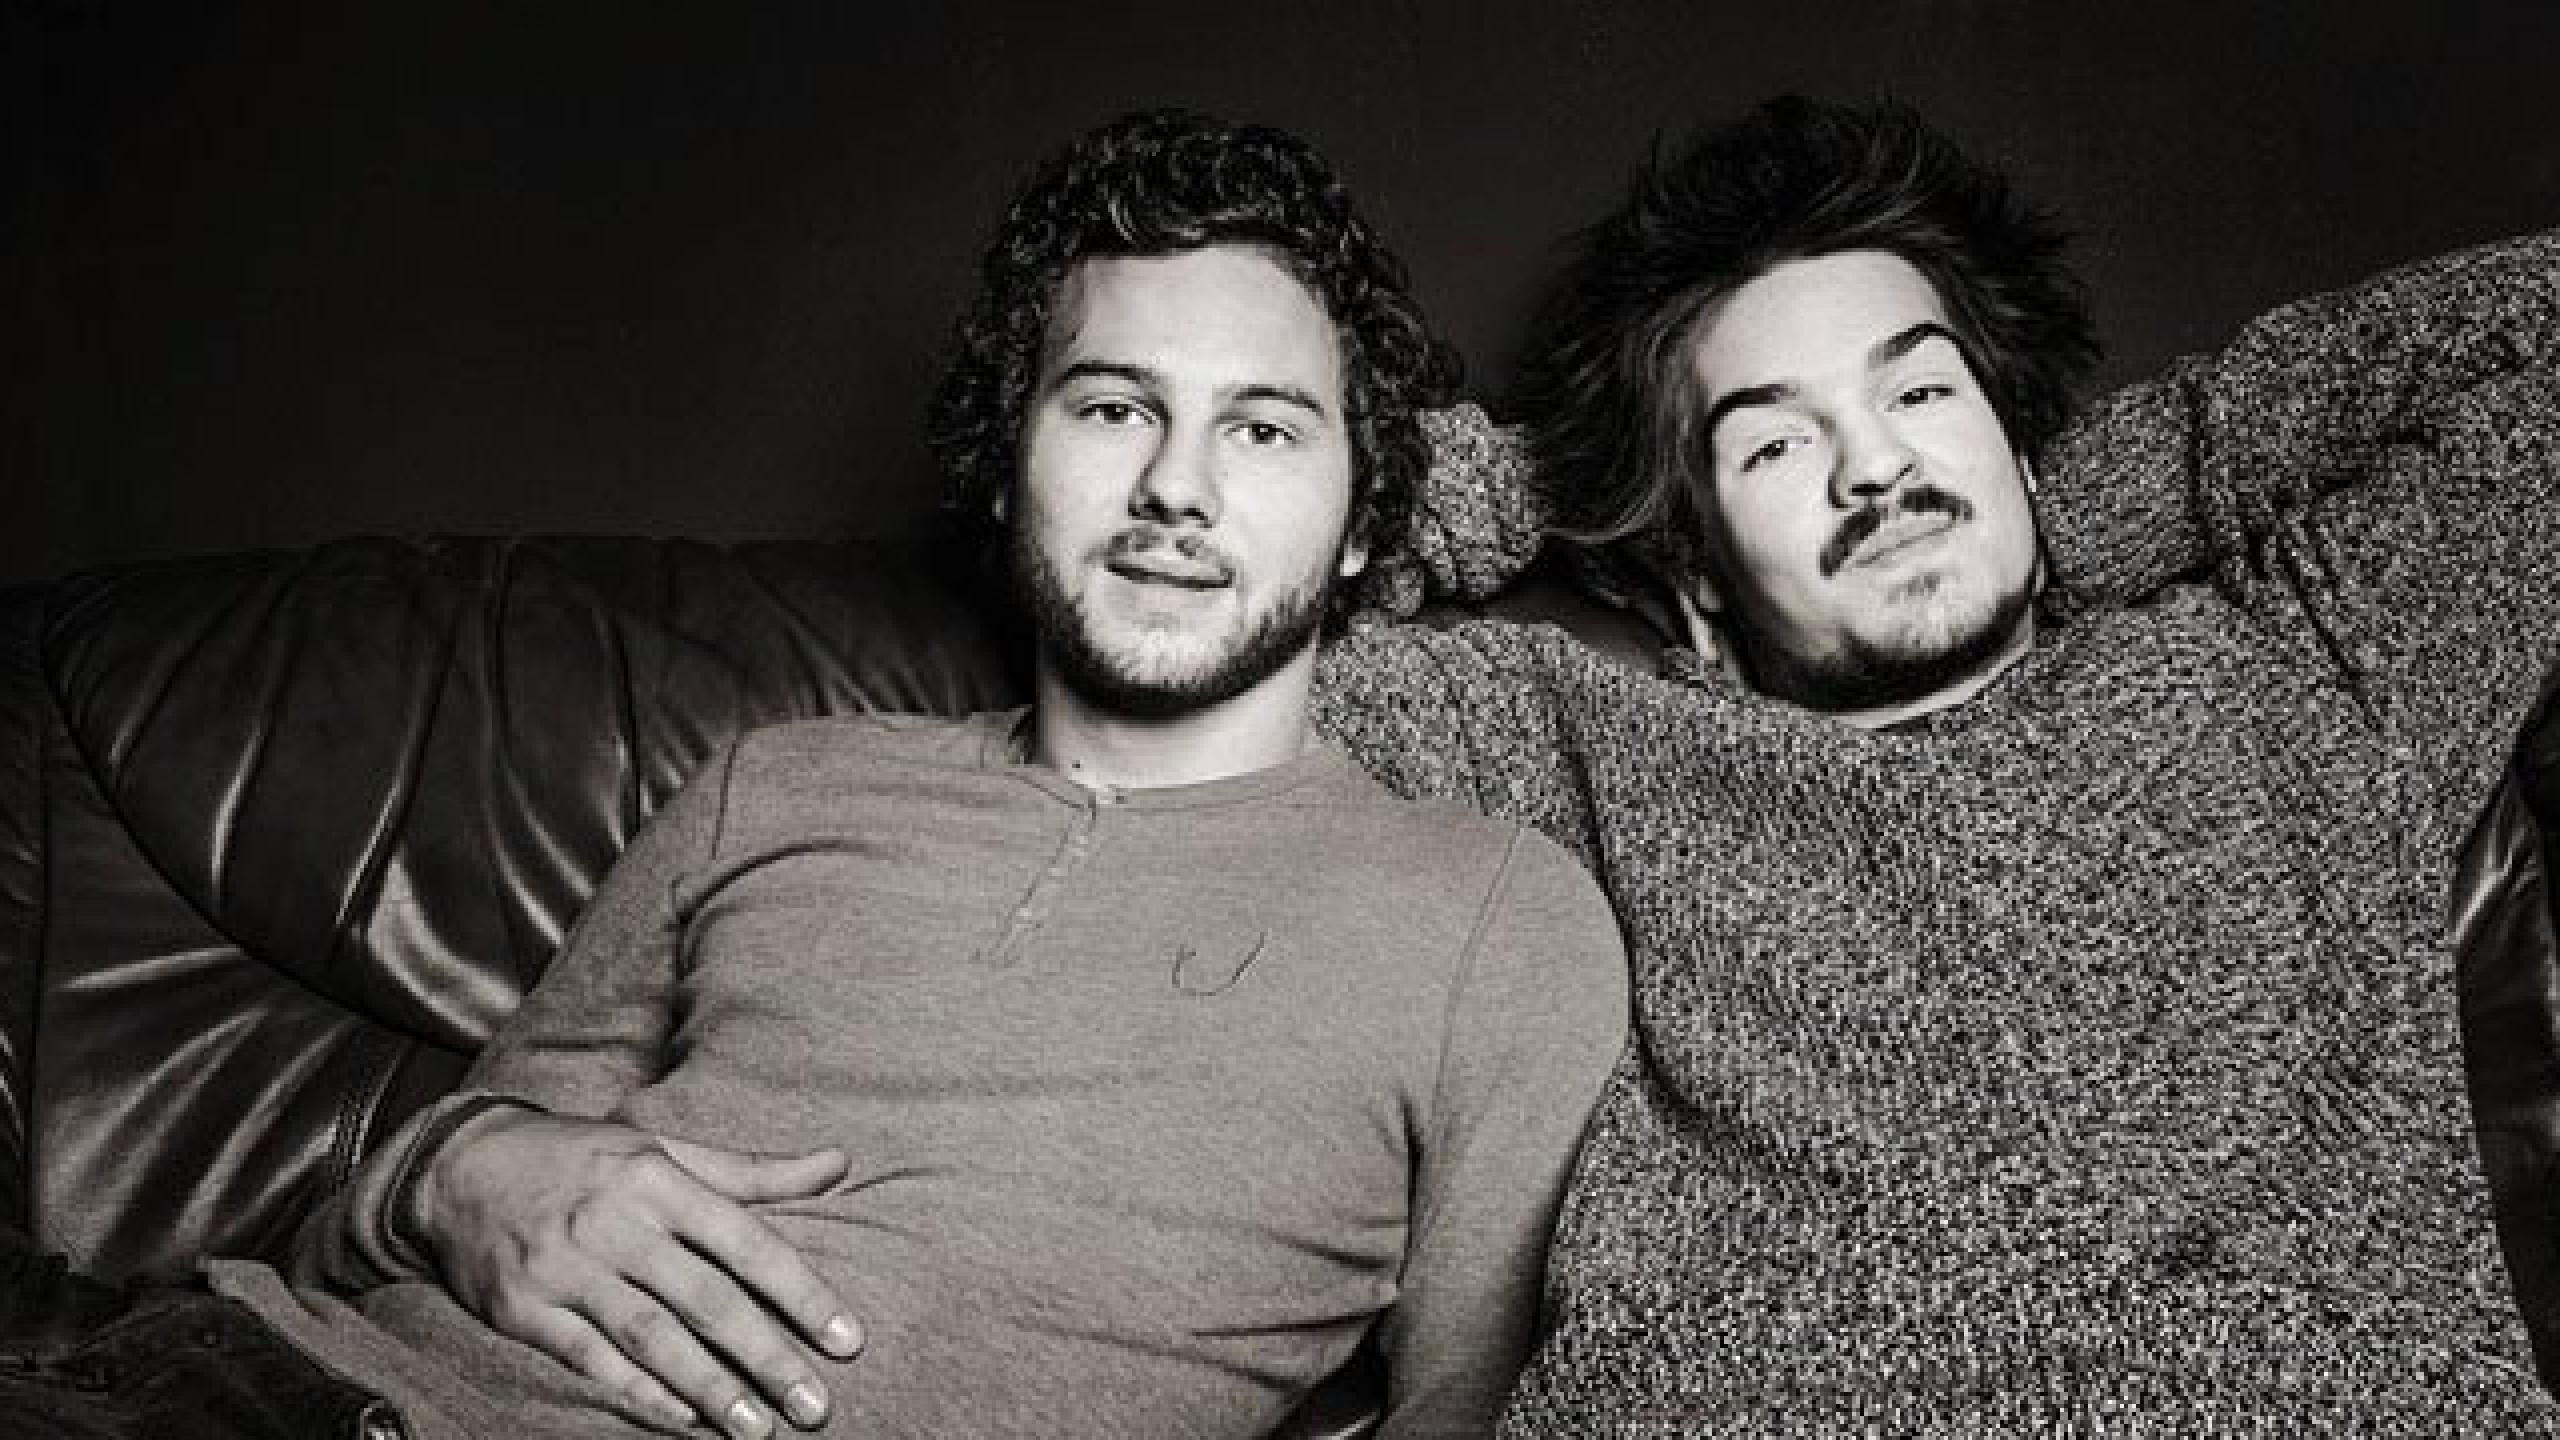 Milky Chance Tour 2020 Milky Chance tour dates 2019 2020. Milky Chance tickets and